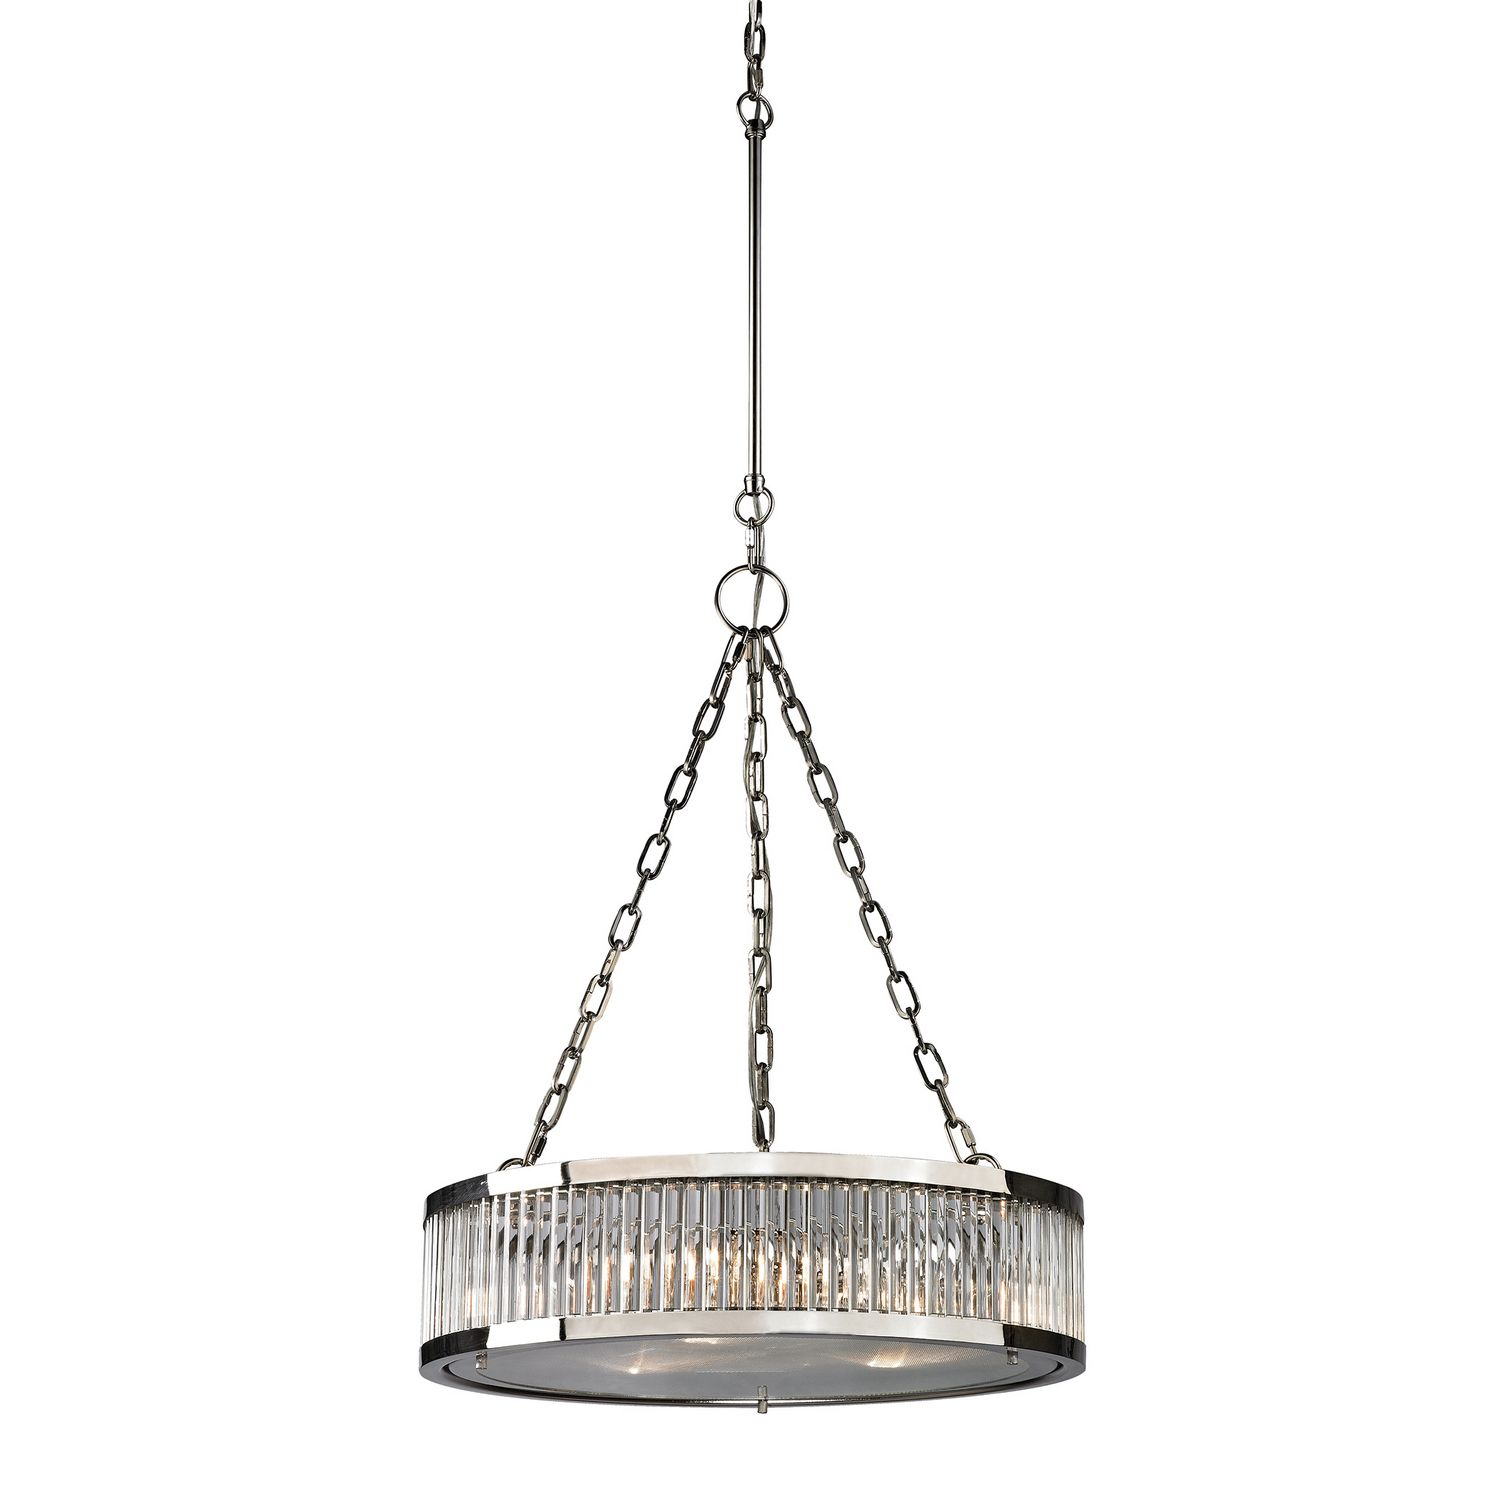 Textured metal brushed nickel drum shade chandelier